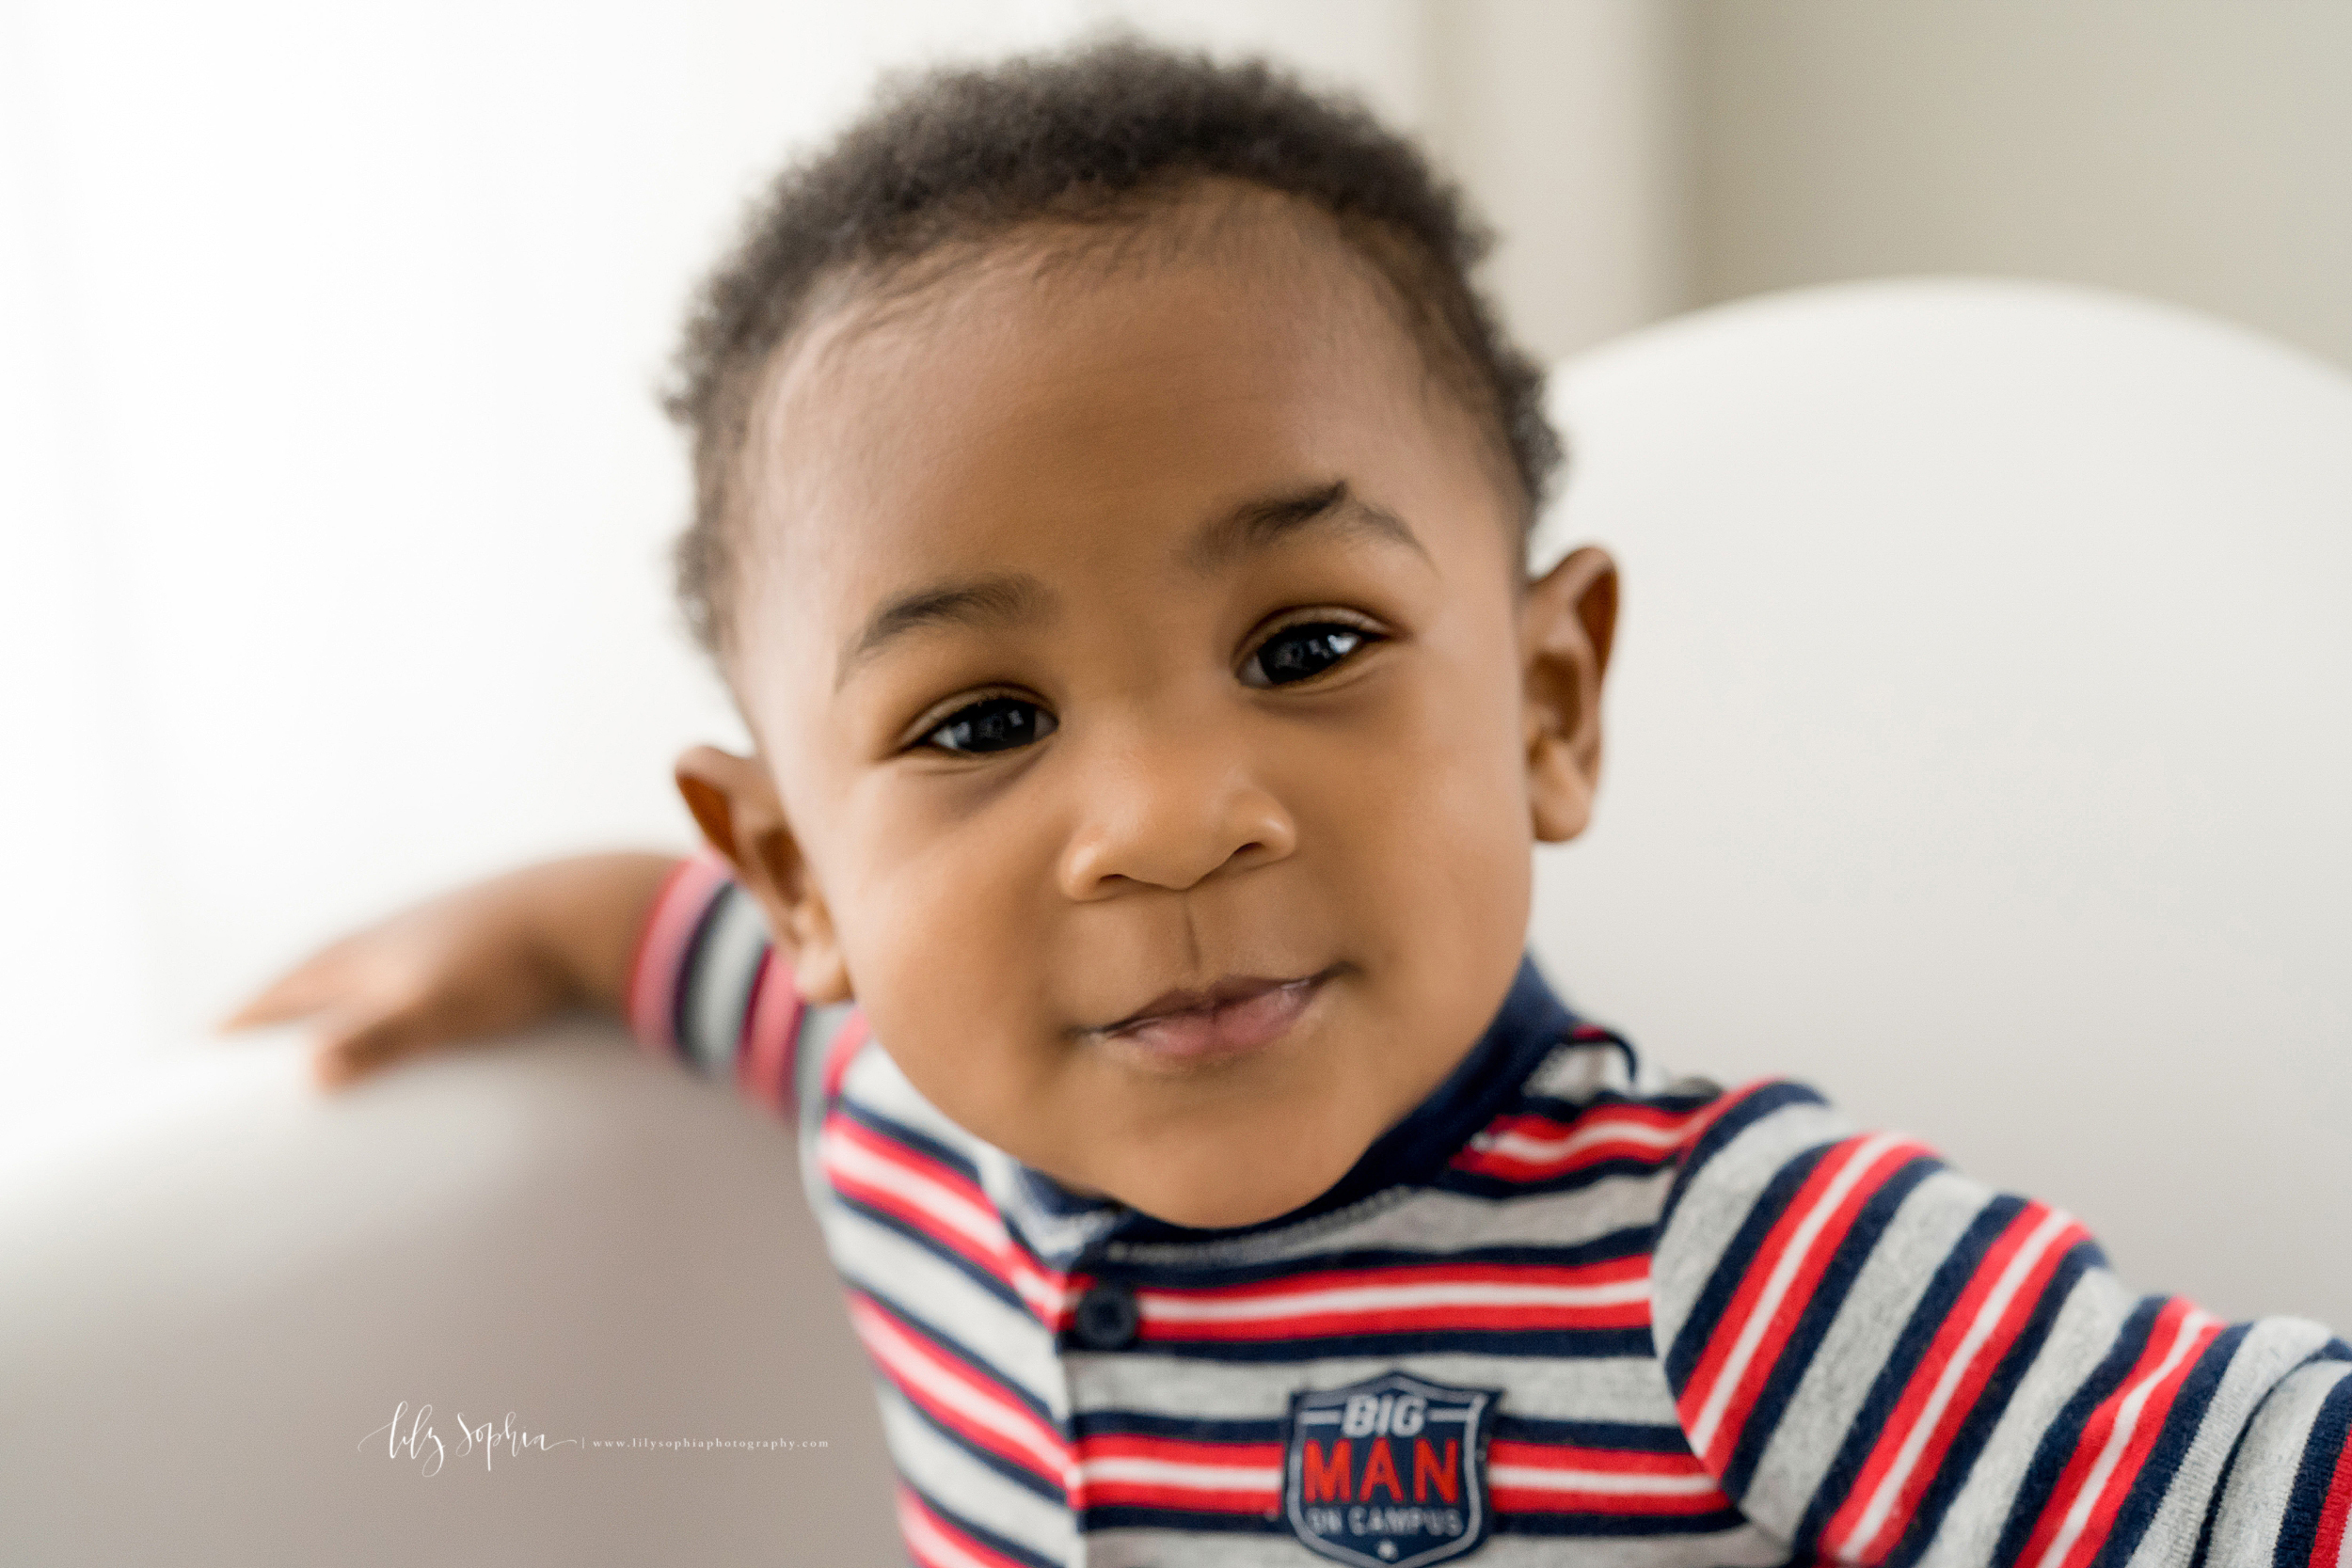 atlanta-lawrenceville-brookhaven-virginia-highlands-smyrna-decatur-lily-sophia-photography-studio-first-birthday-session-toddler-baby-boy-family-pictures_0752.jpg